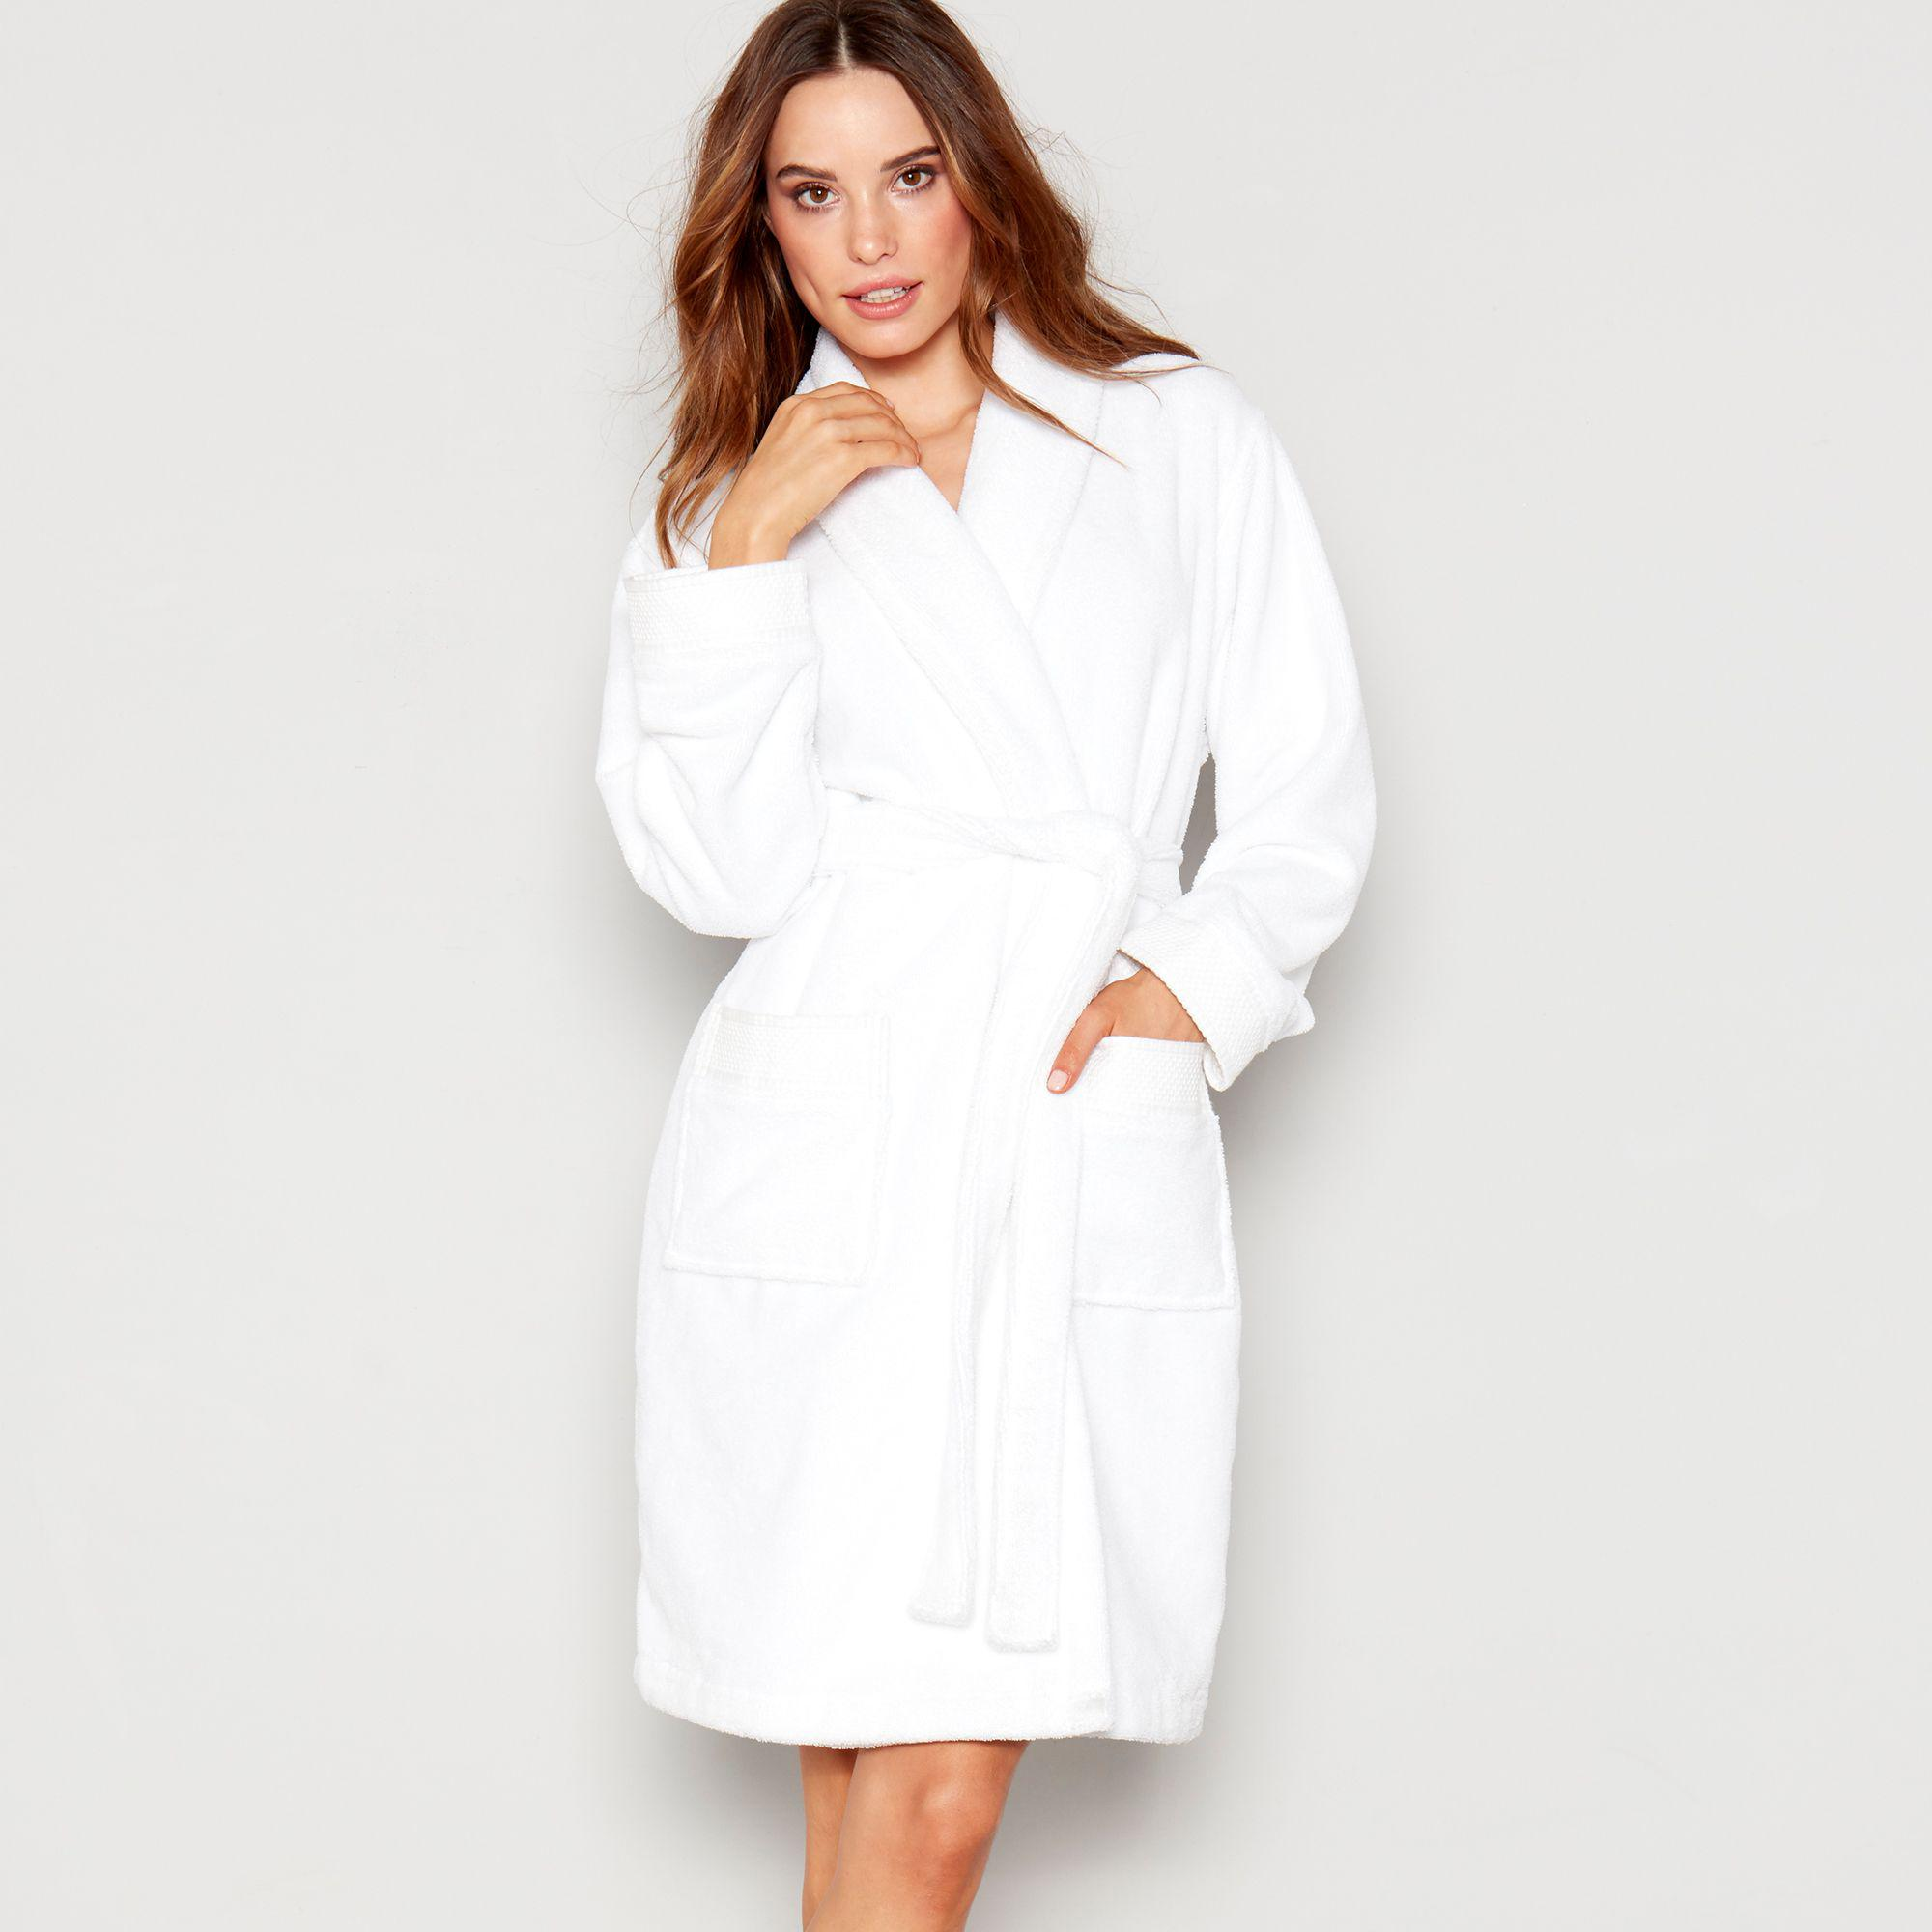 J By Jasper Conran White Towelling Dressing Gown in White - Lyst f387943e8